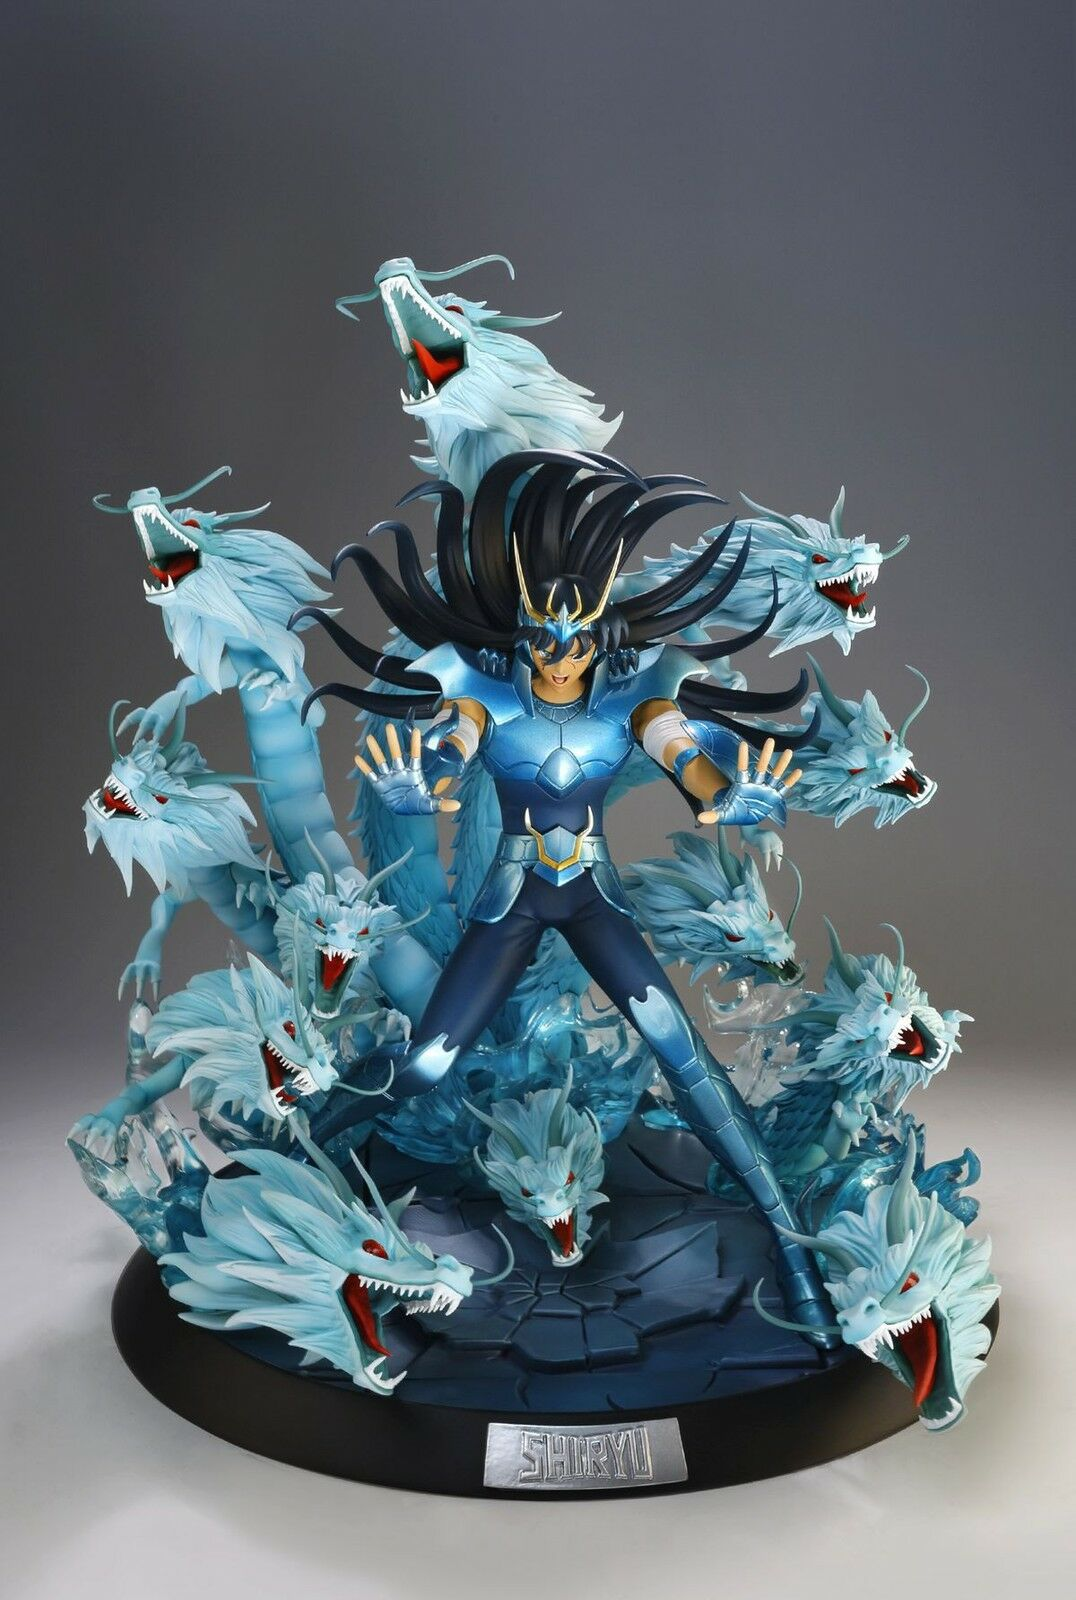 Tsume HQS Saint Seiya Dragon Shiryu 1/6 scale Statue